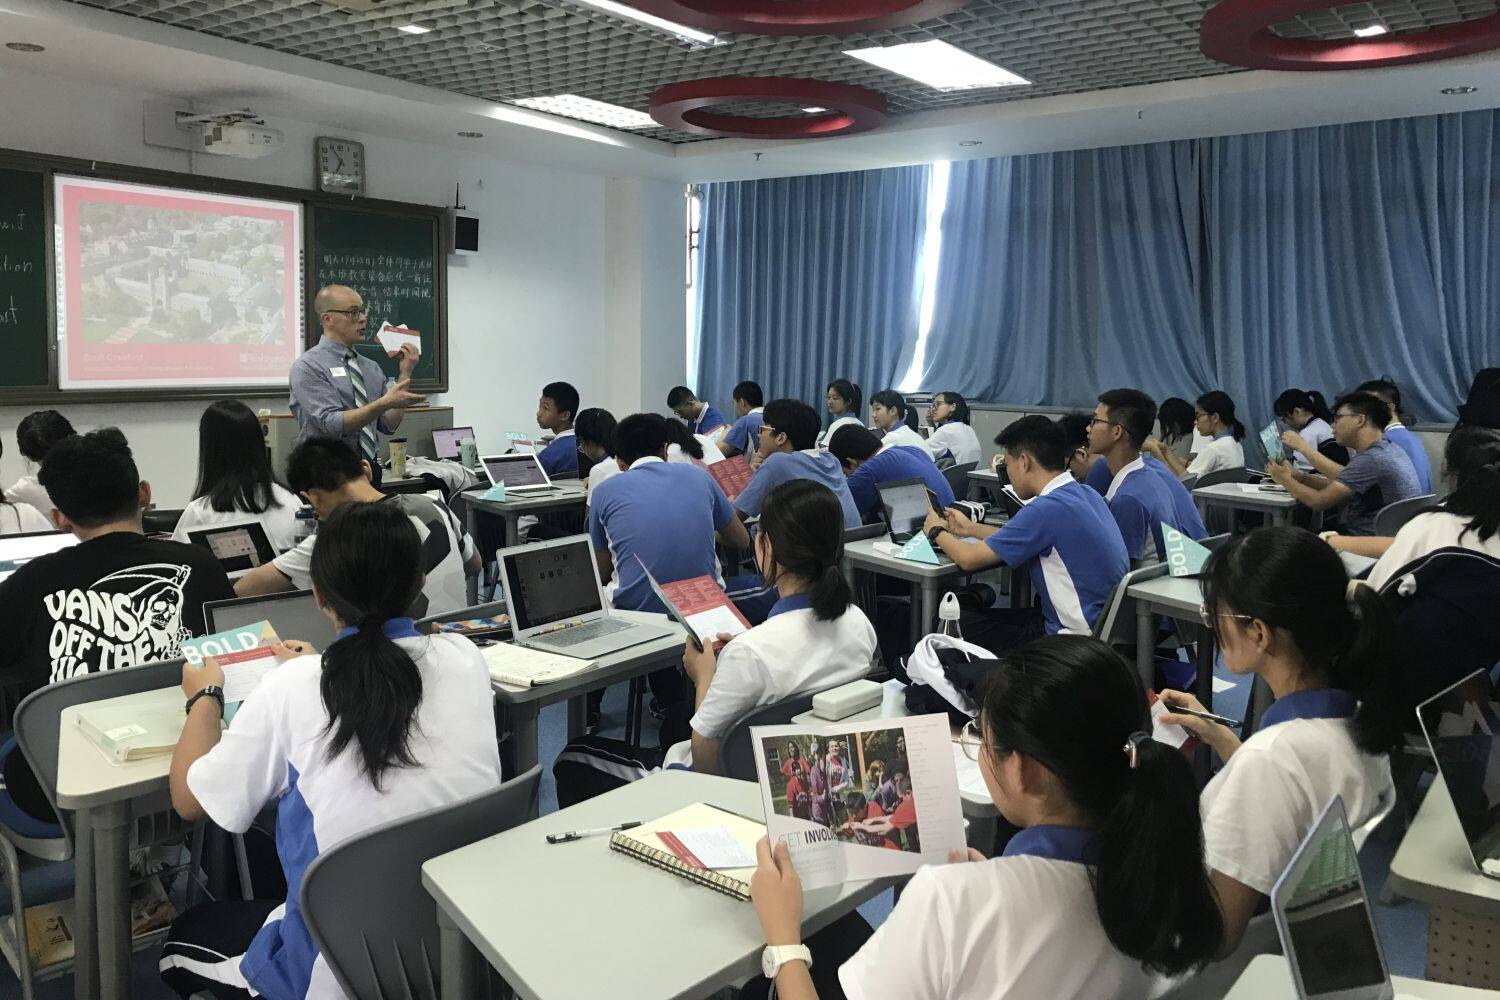 A teacher gives a presentation to a classroom full of Chinese students sitting at desks